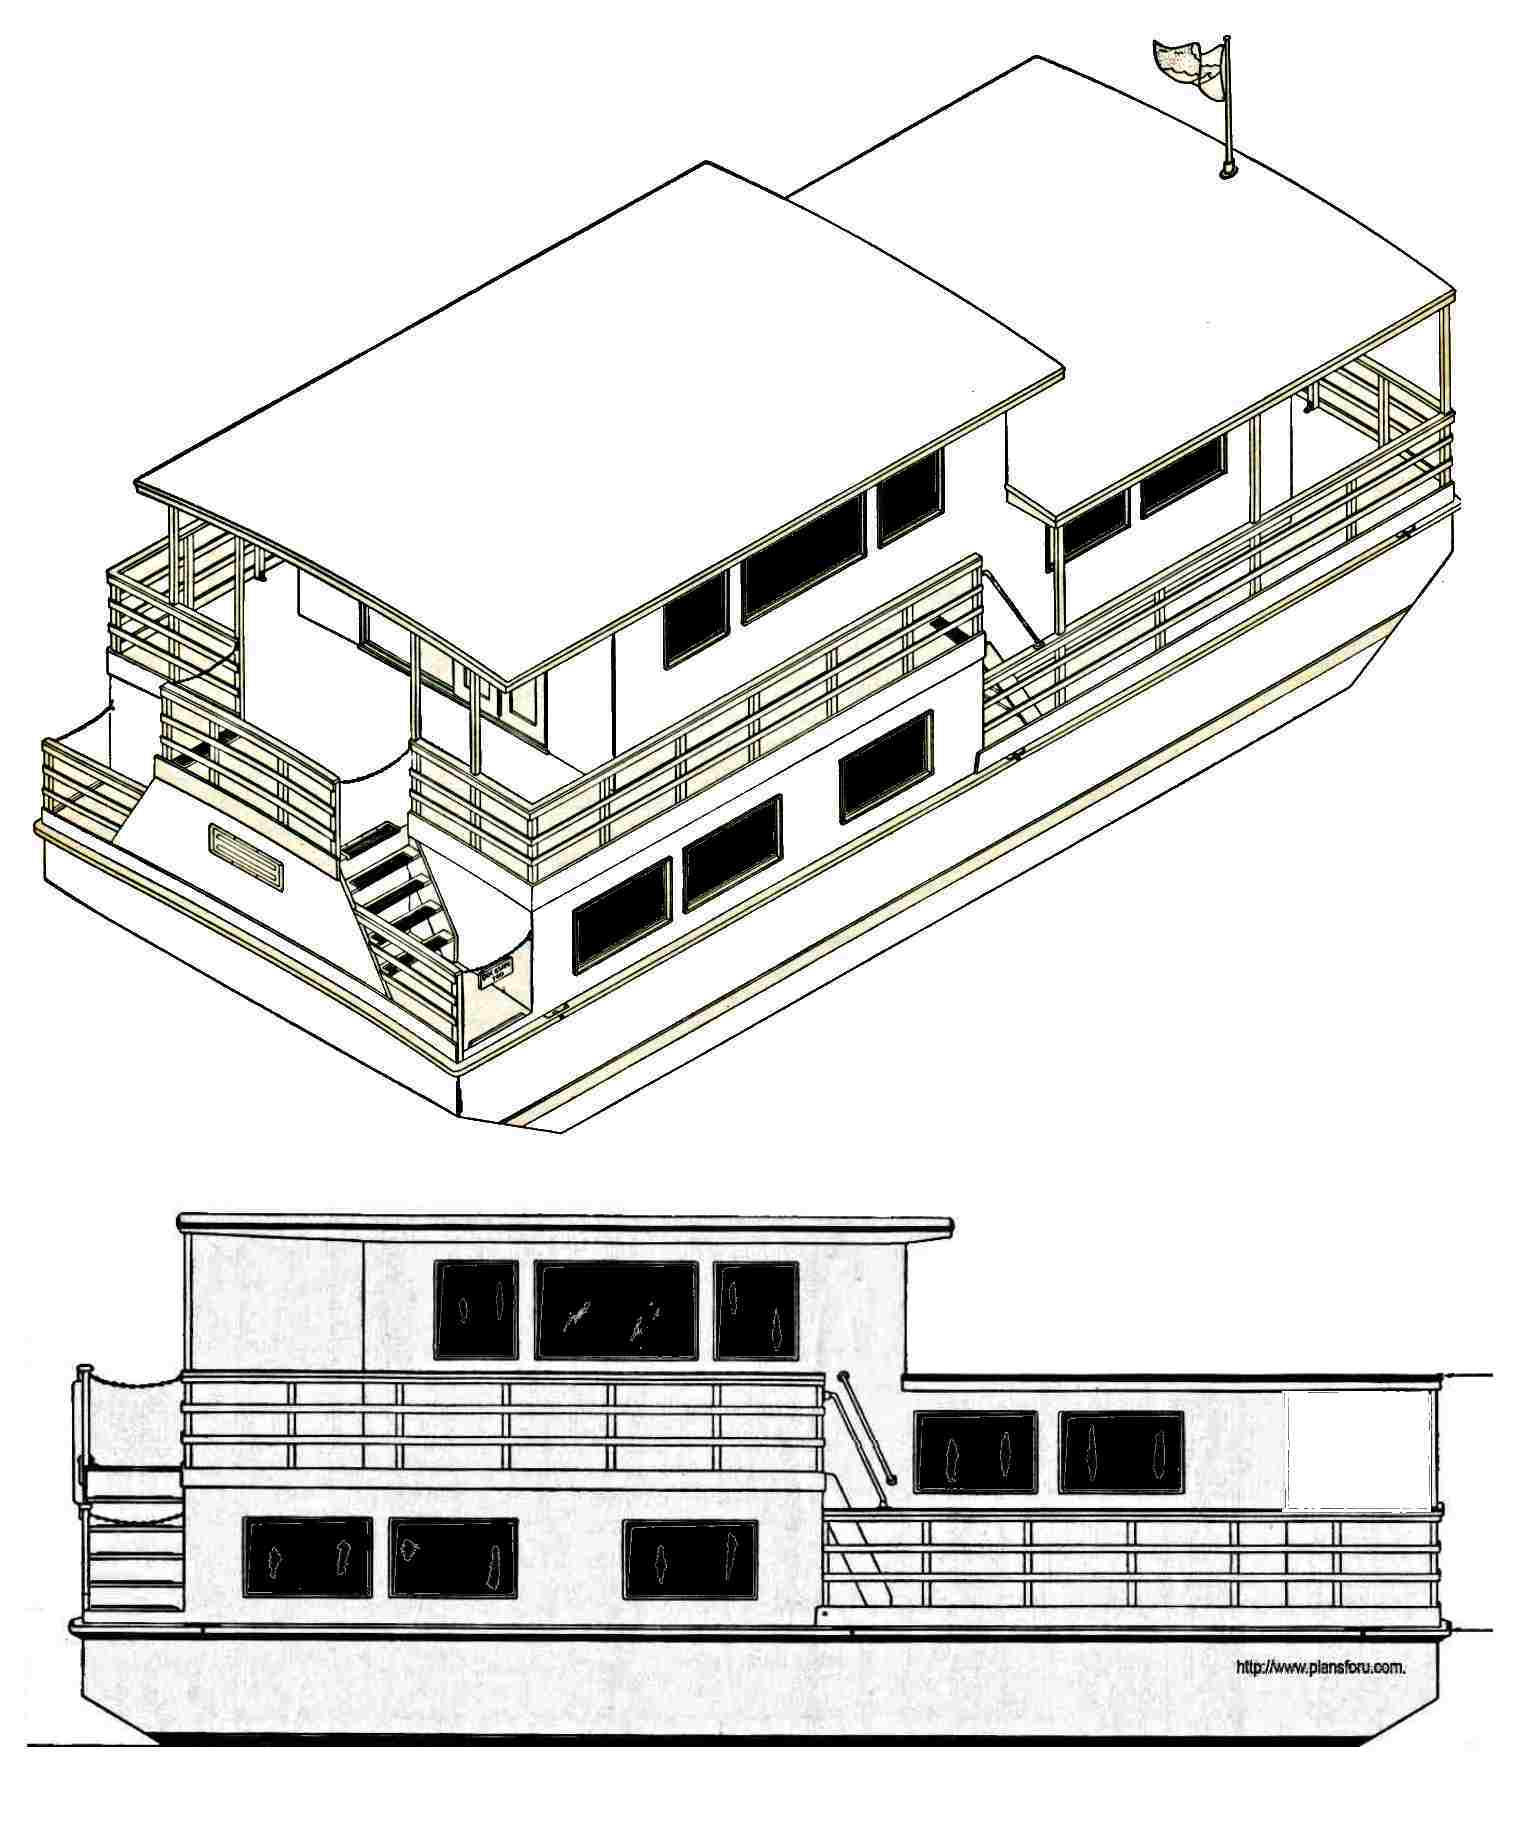 Excellent house boat plans pictures best inspiration for Boat house plans pictures